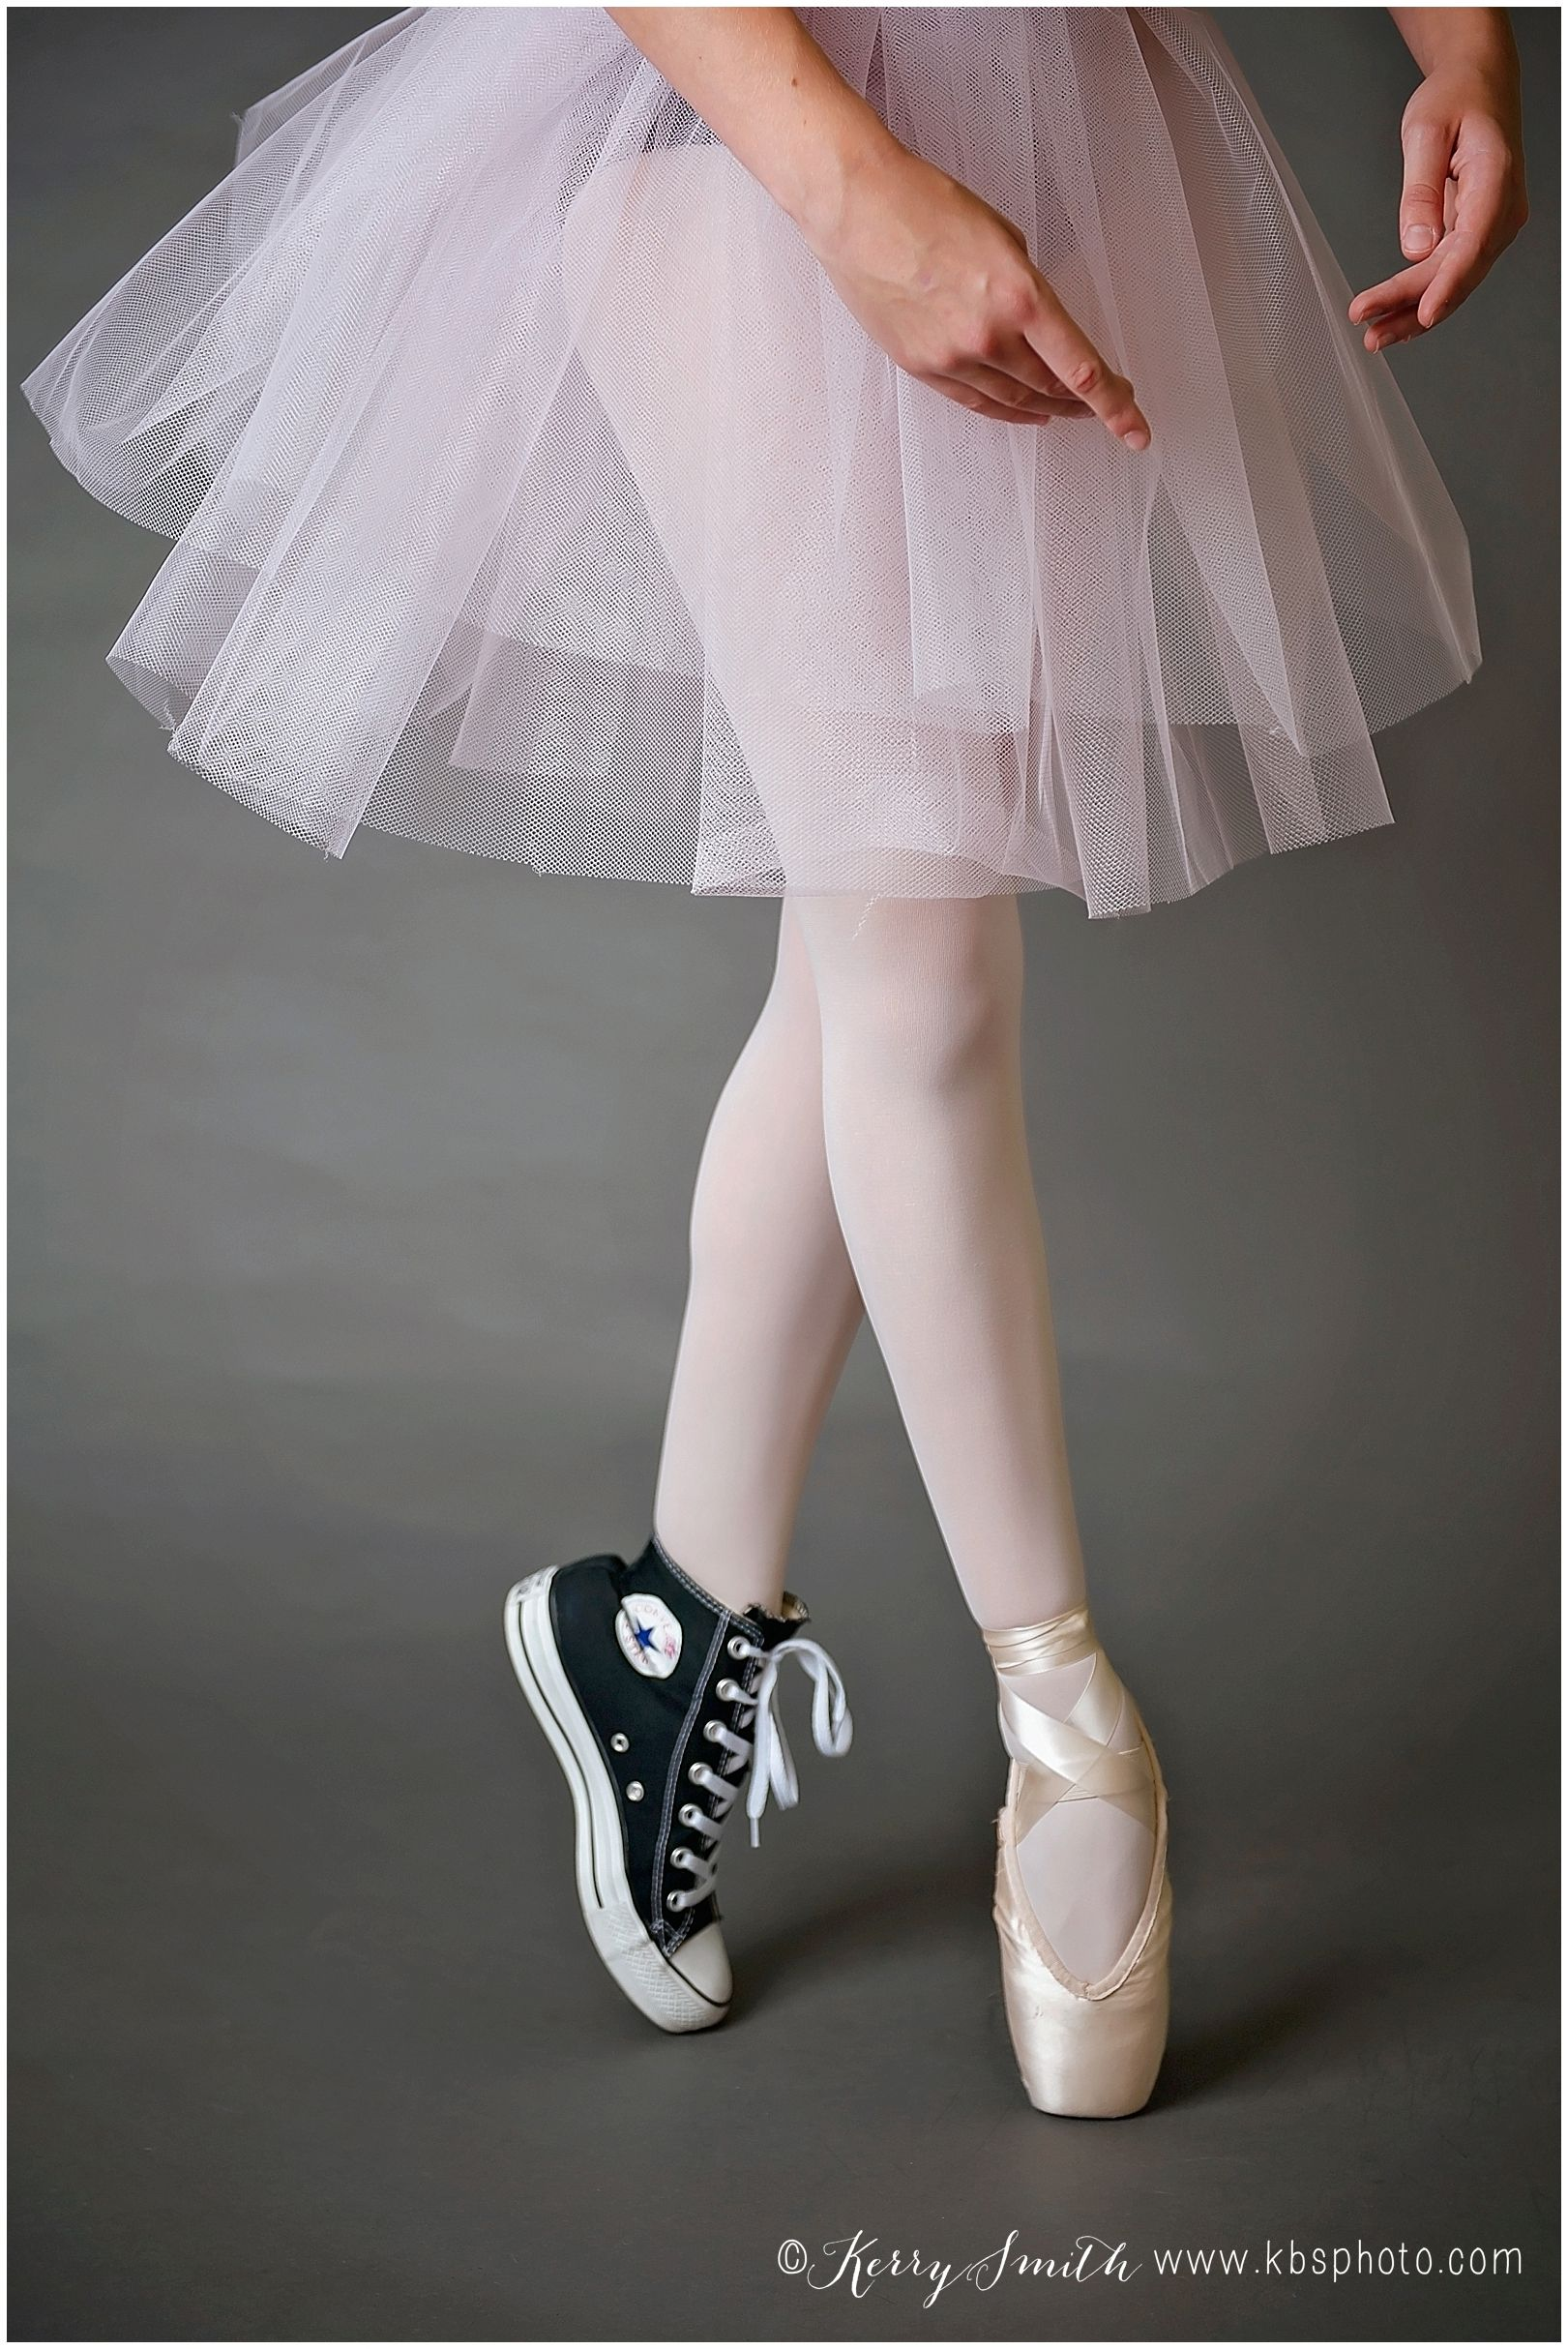 how to take care of your feet on pointe hard work ballerina and toe